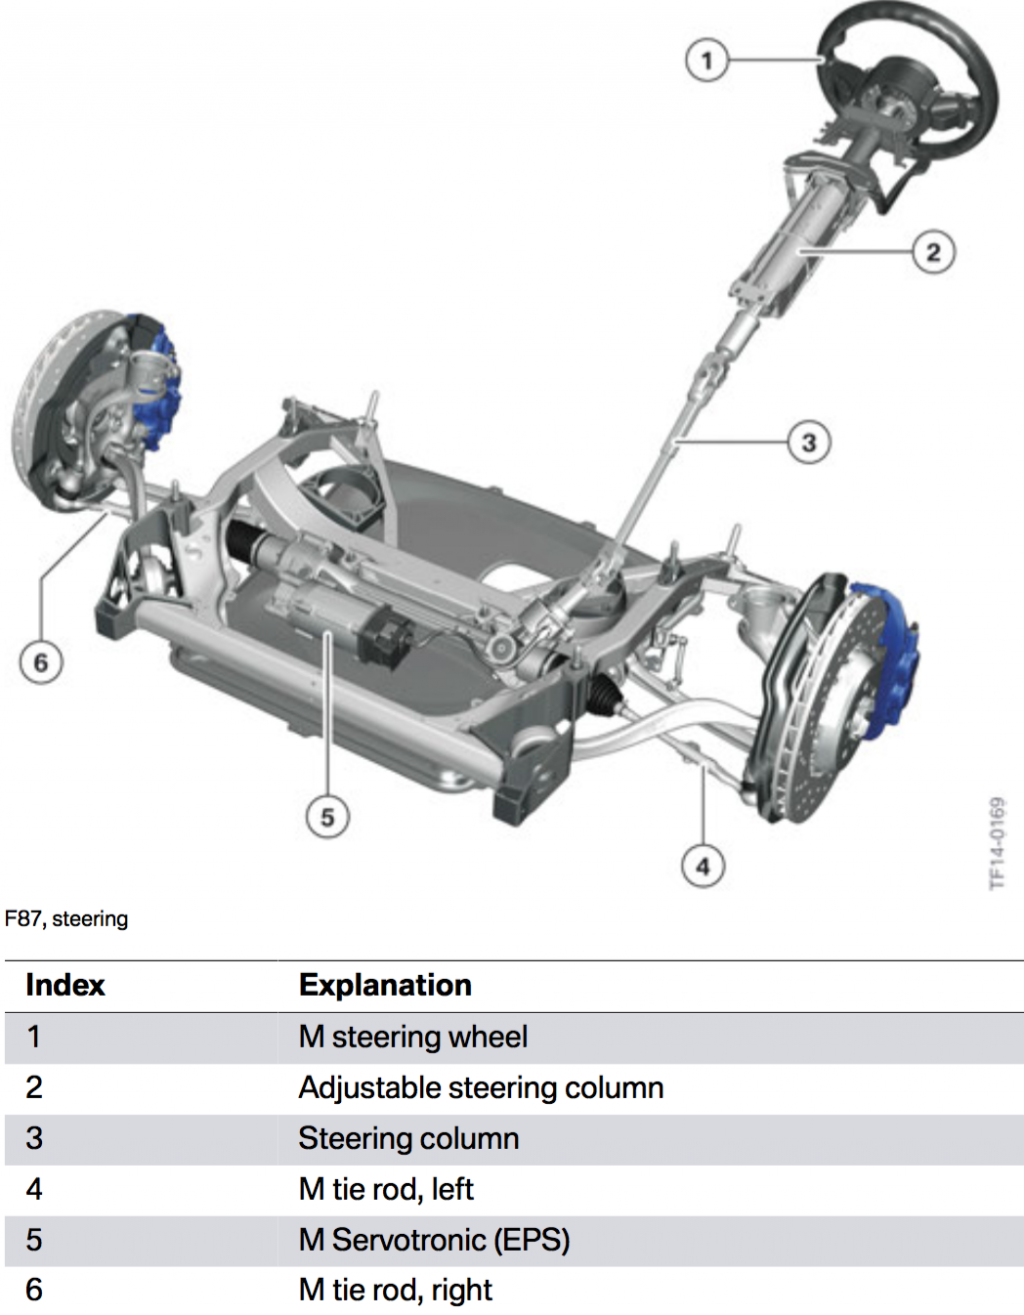 Bimmerfile Technical Report The Bmw M2 Servotronic Wiring Diagram Given Bmws Need To Reduce Emissions Every Way It Can Features A Rack And Pinion Steering With Electrical Assistance M Based